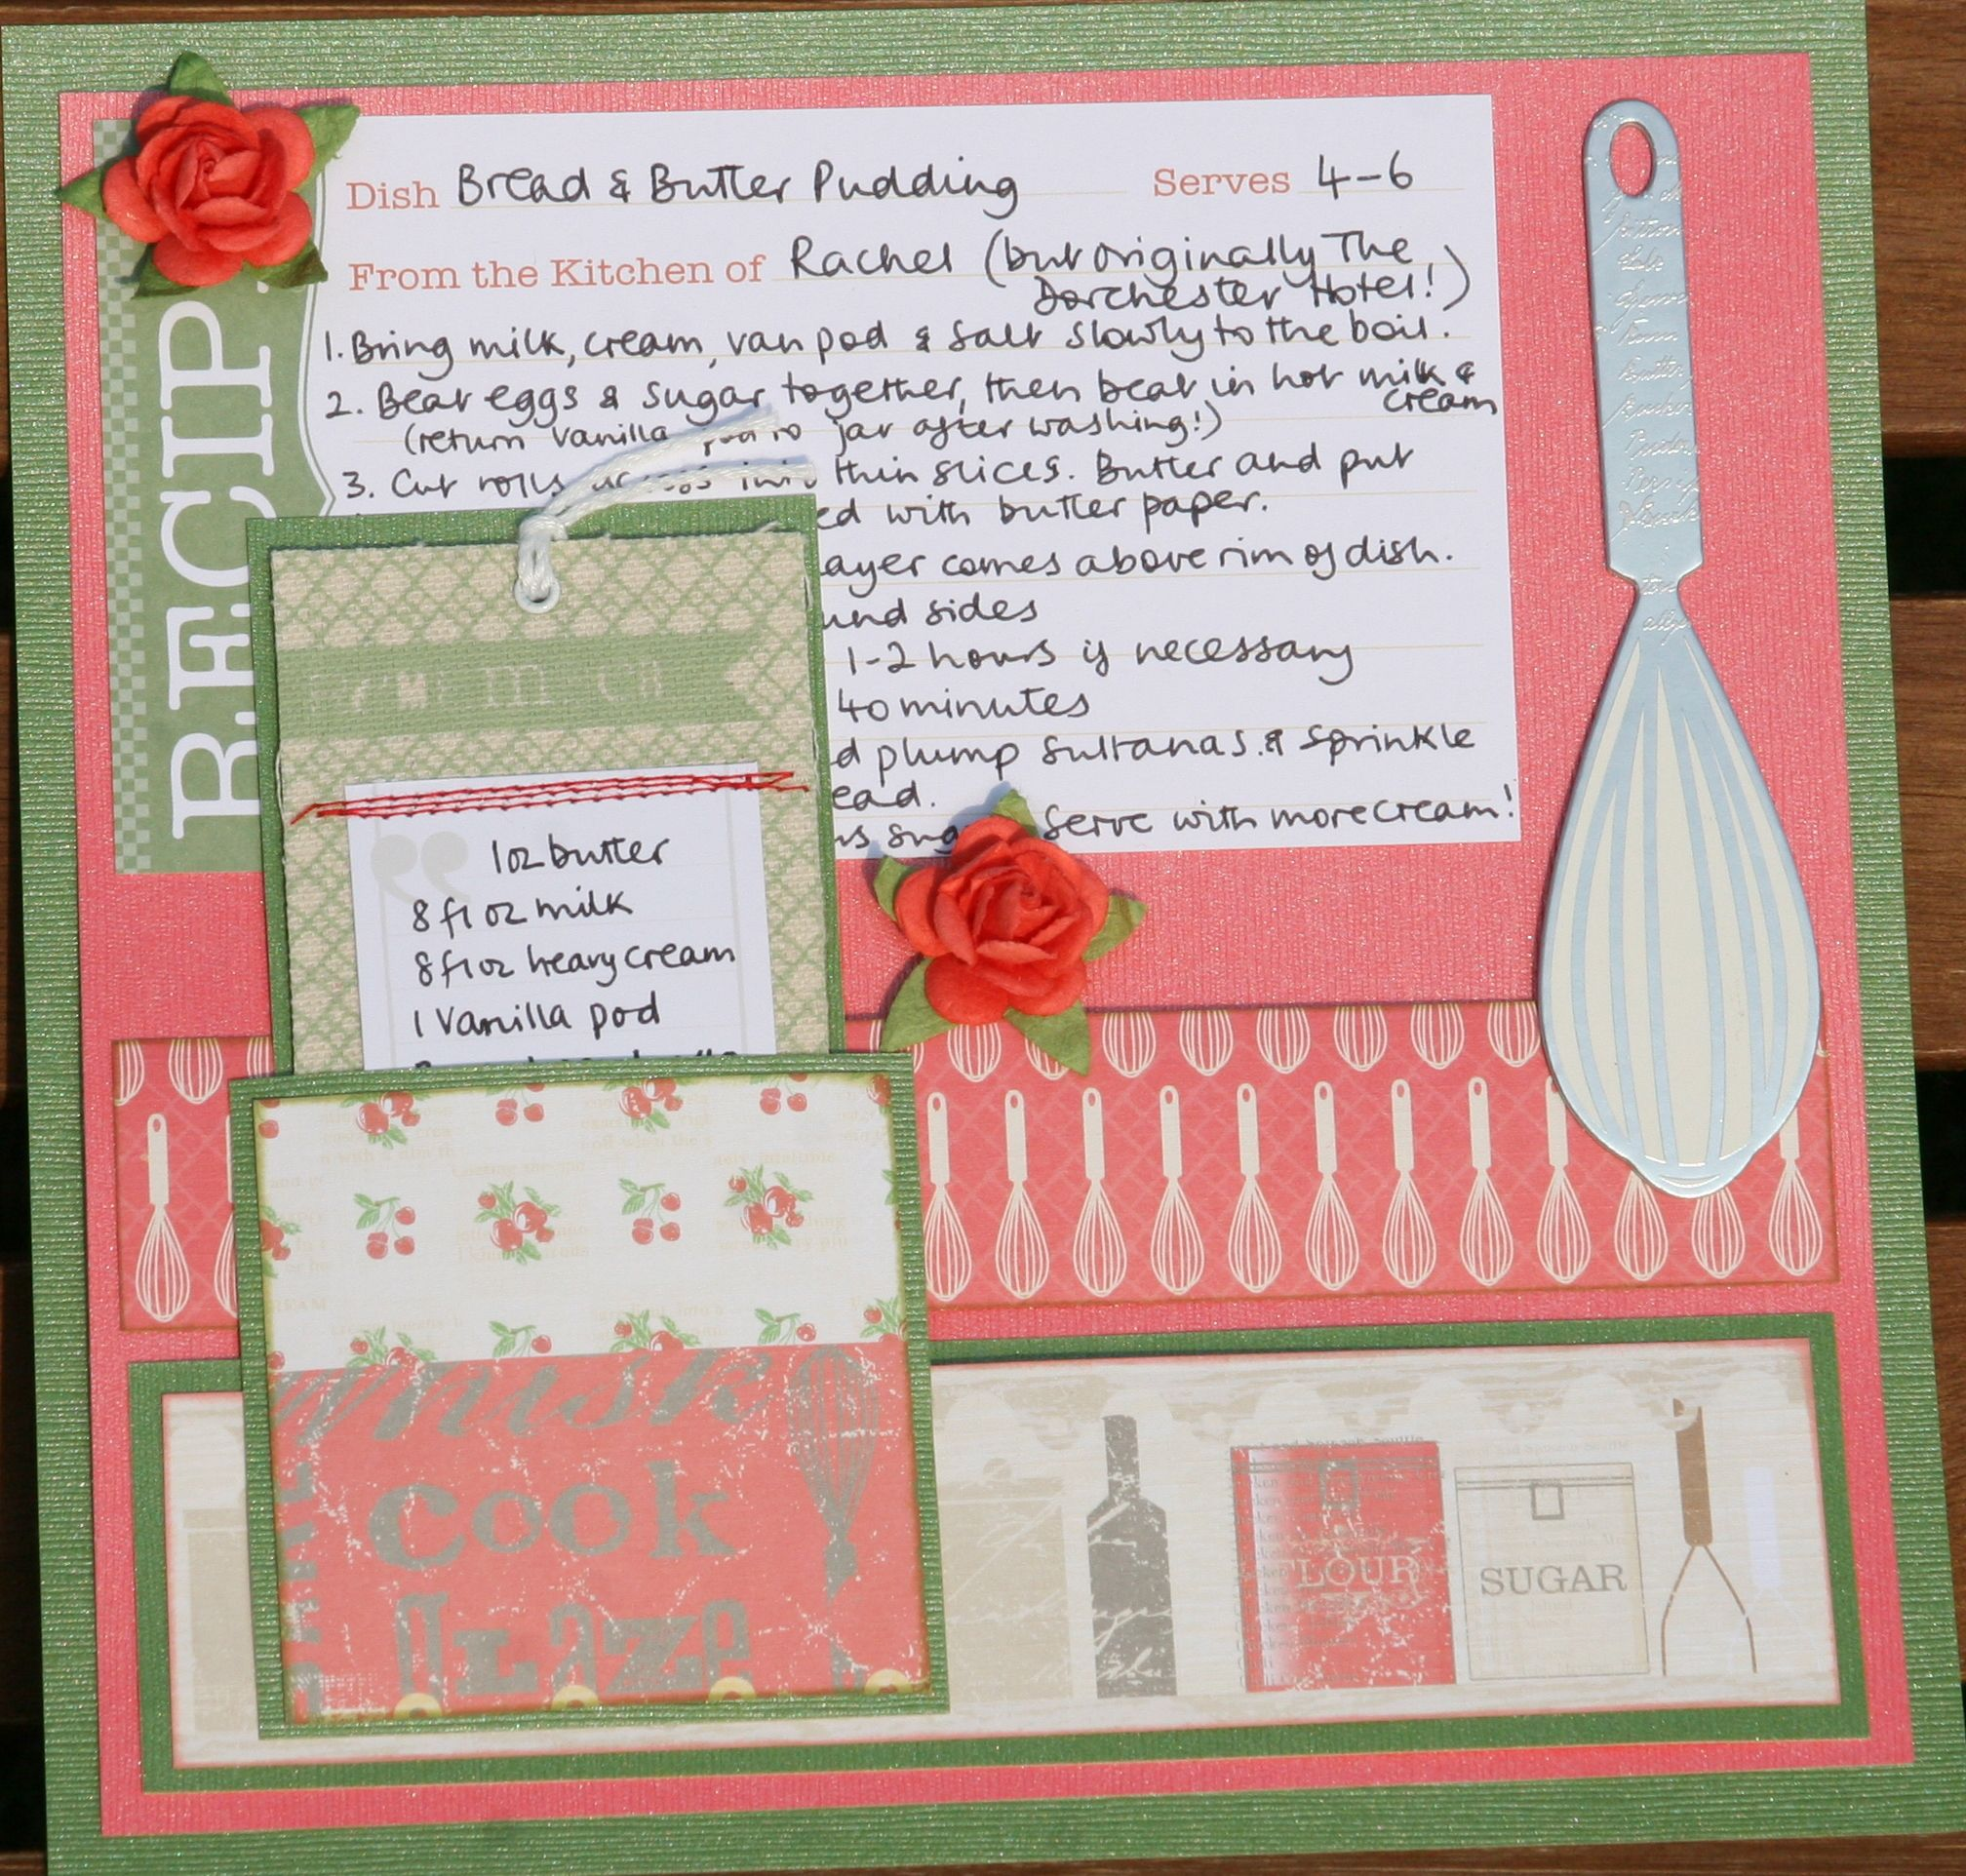 How to scrapbook yahoo - Recipe Scrapbook Swaps Yahoo Search Results